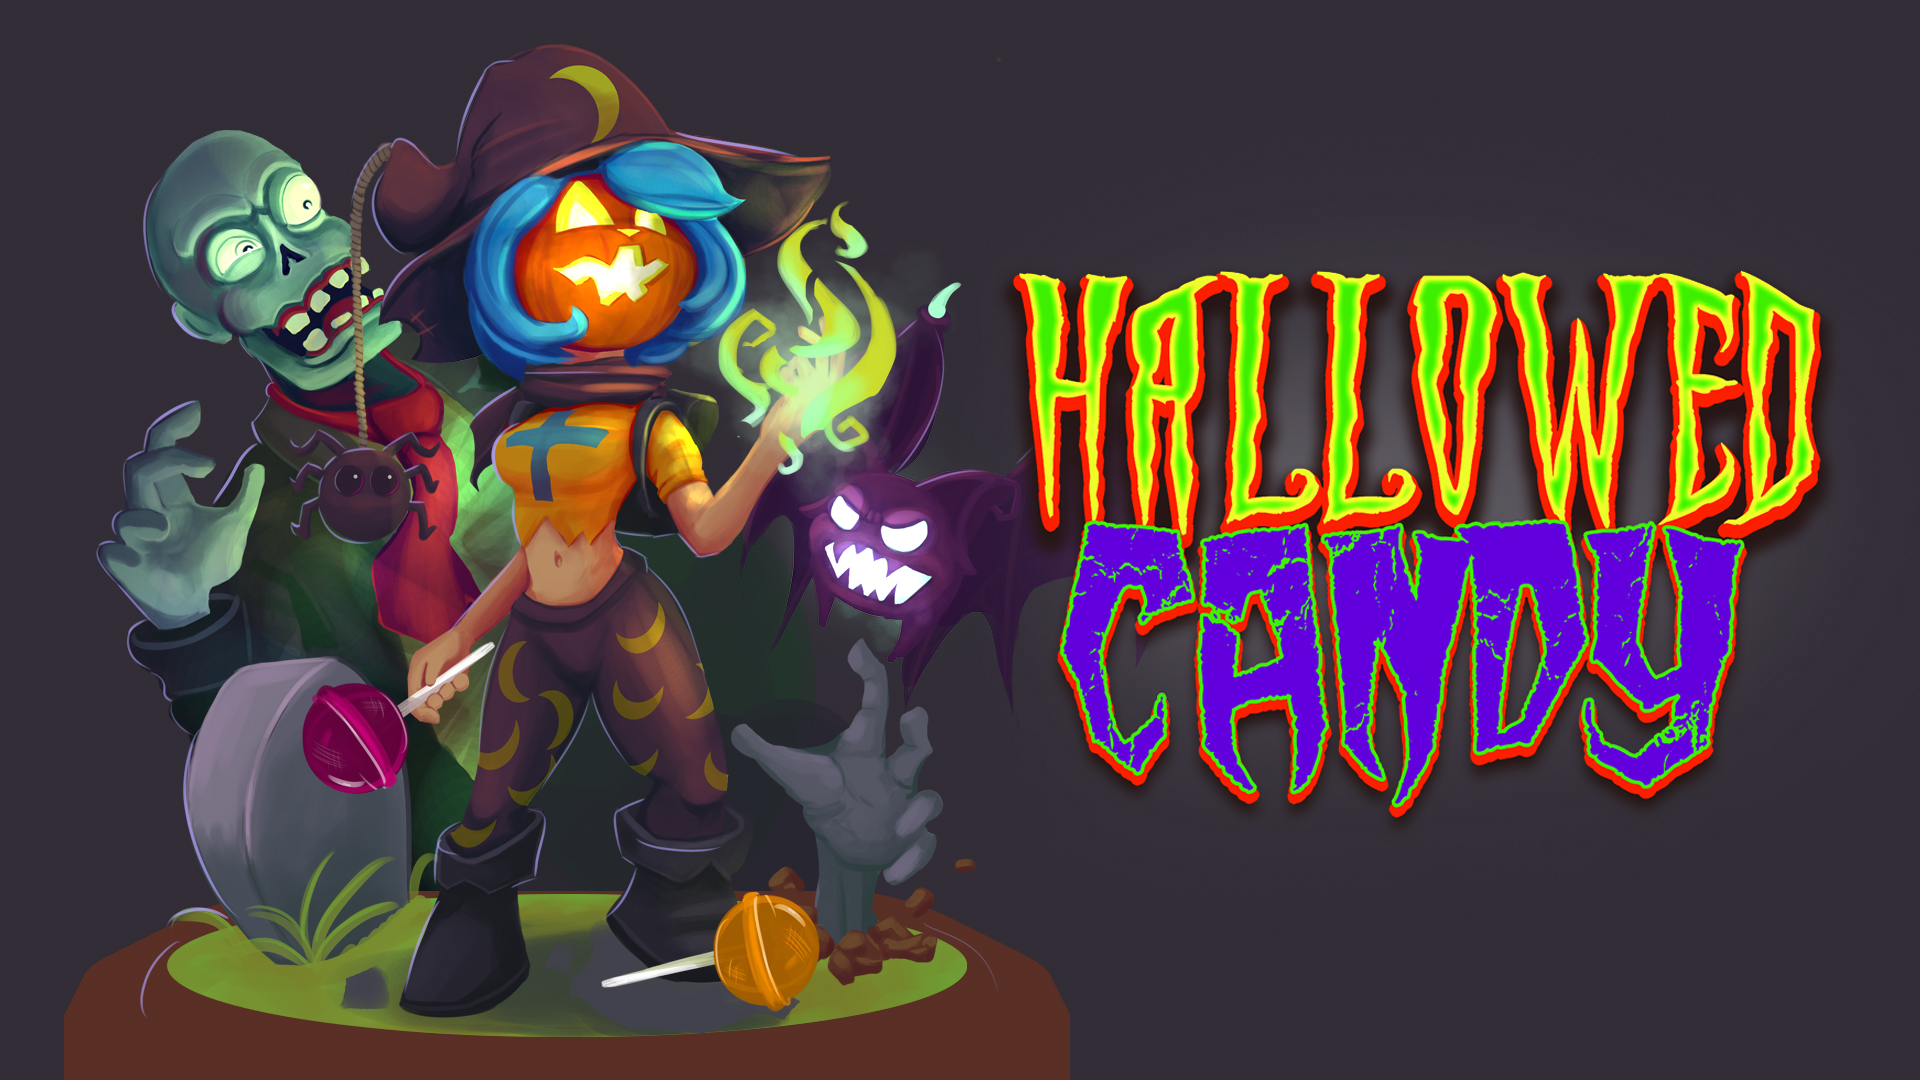 Hallowed Candy: Halloween Treat